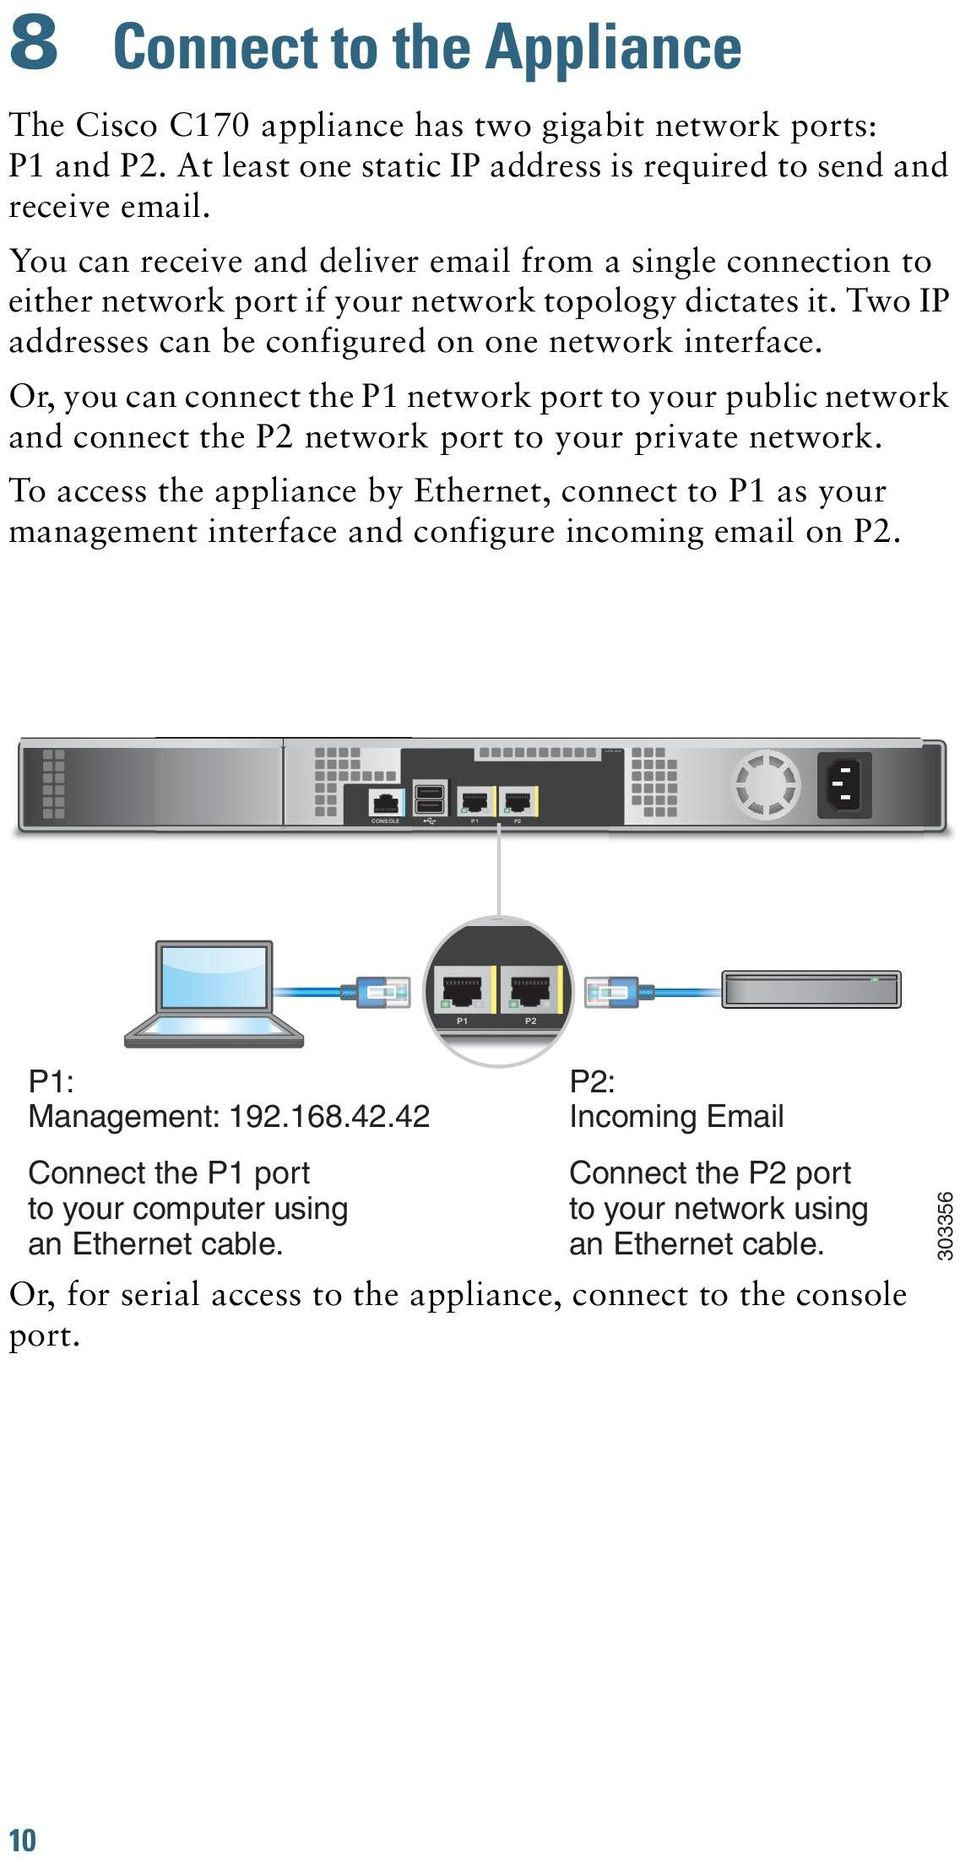 Or, you can connect the P1 network port to your public network and connect the P2 network port to your private network.